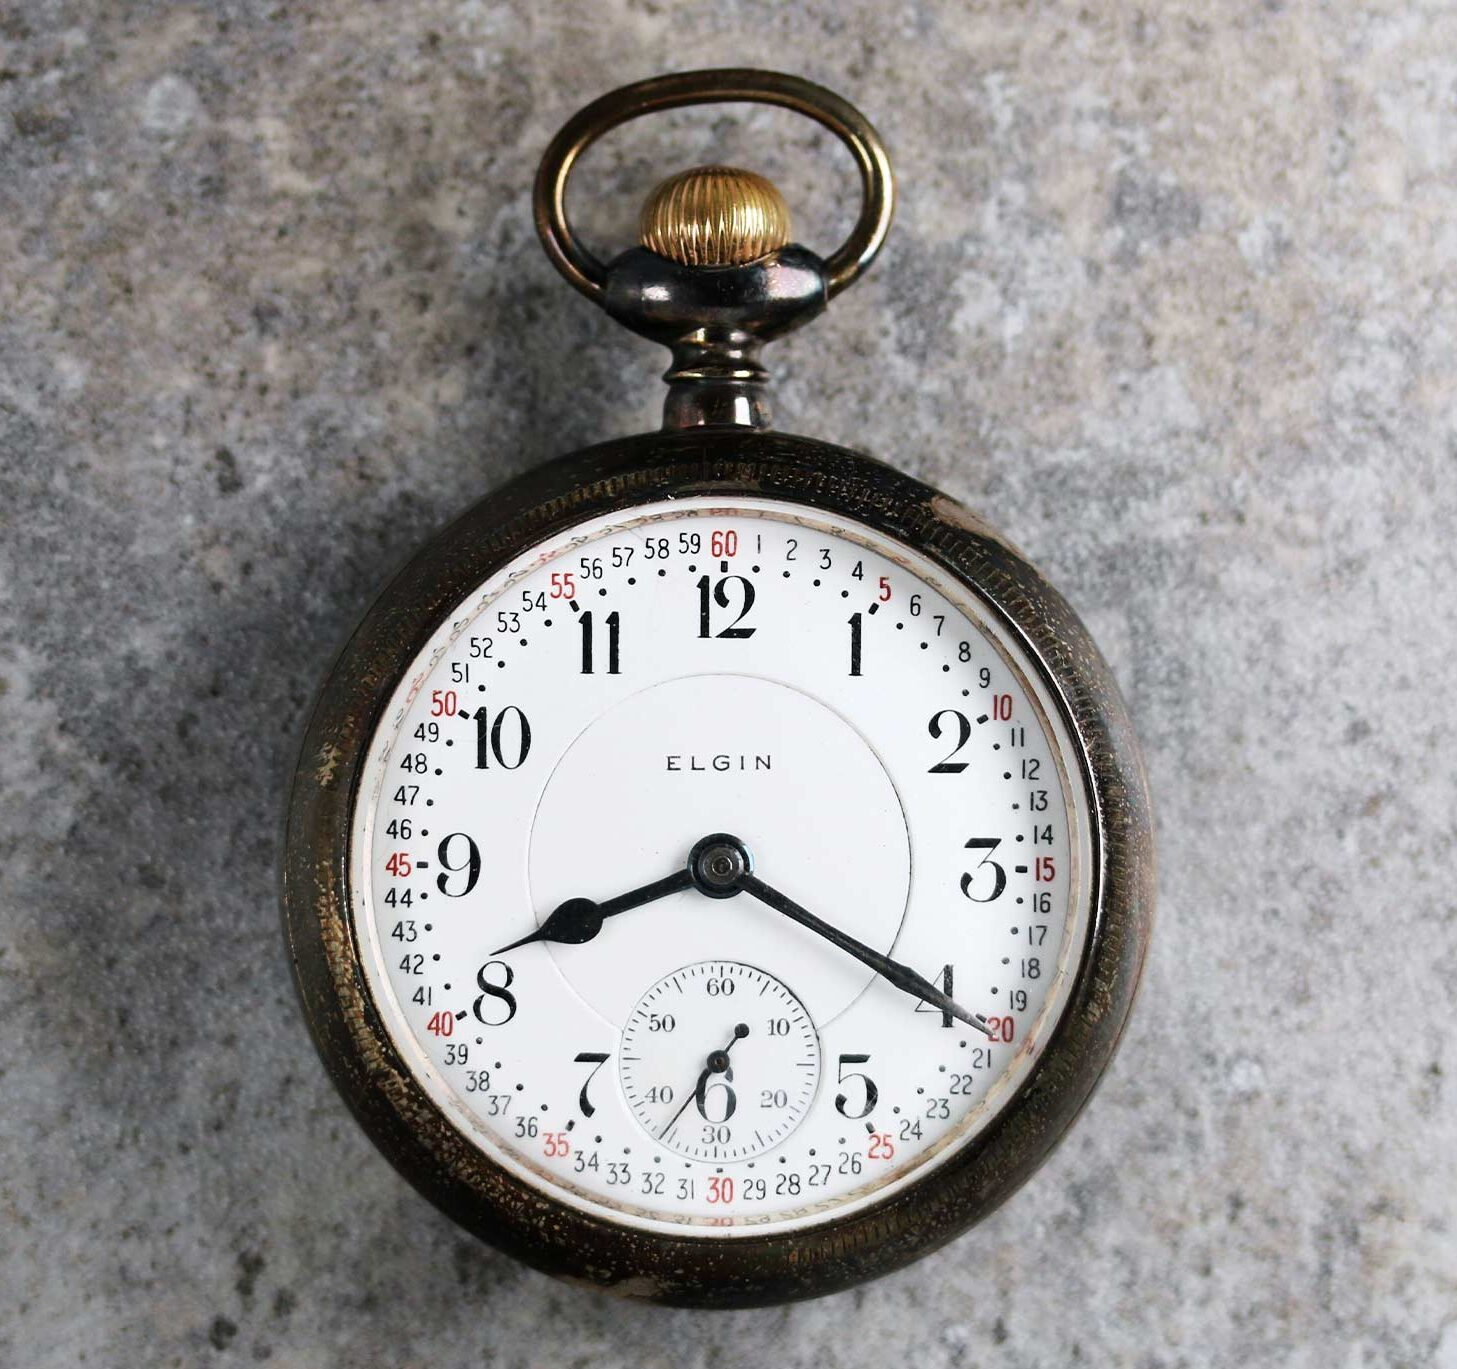 Elgin 1909 pocket watch for sale